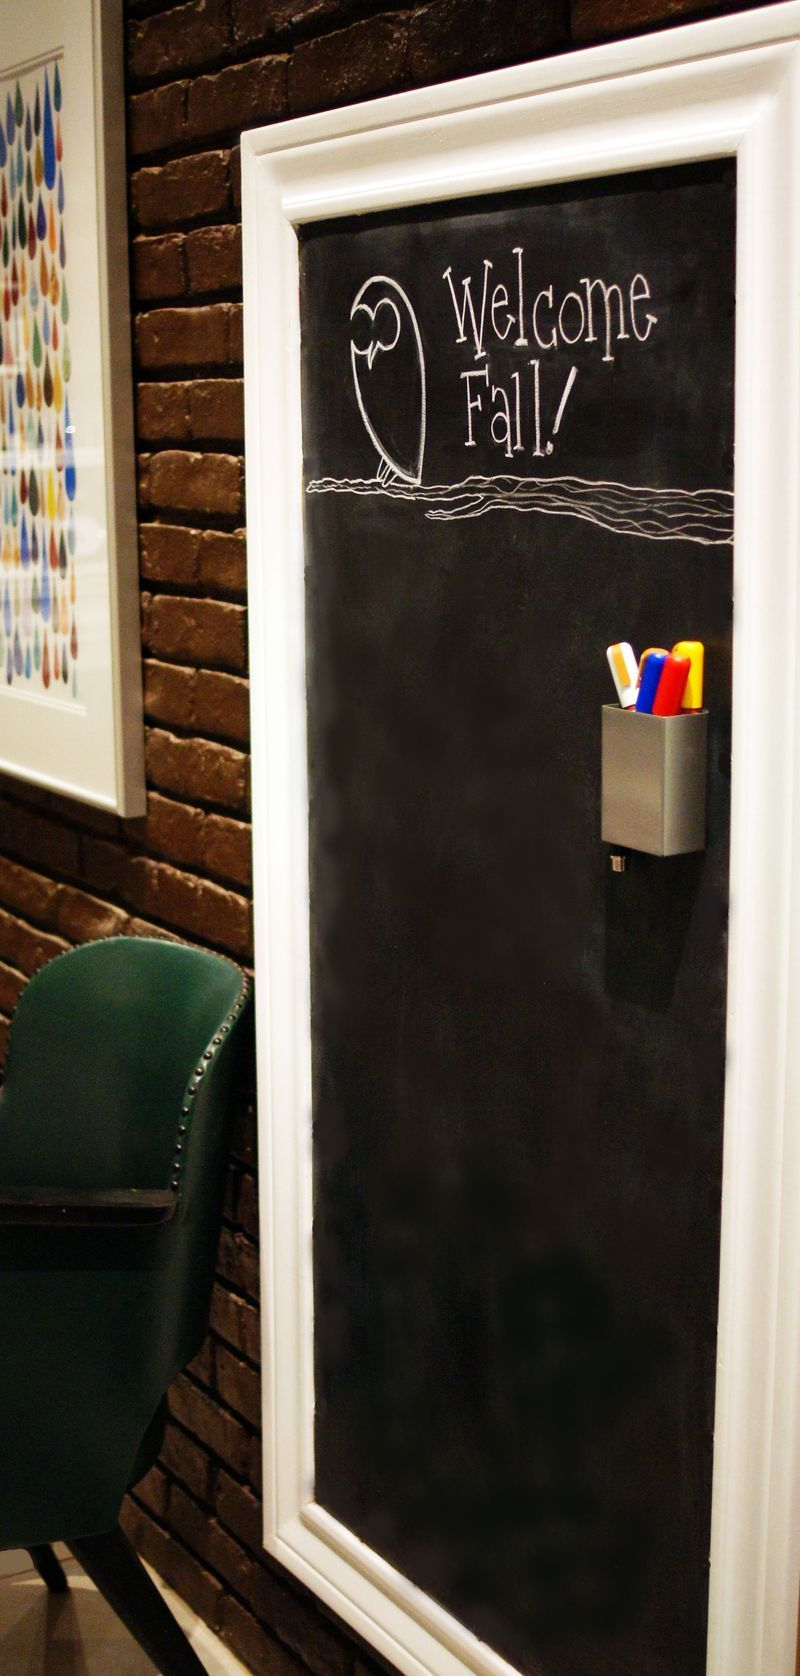 STEP-BY-STEP FRAMED MAGNETIC CHALKBOARD DIY. | crafts misc | Pinterest